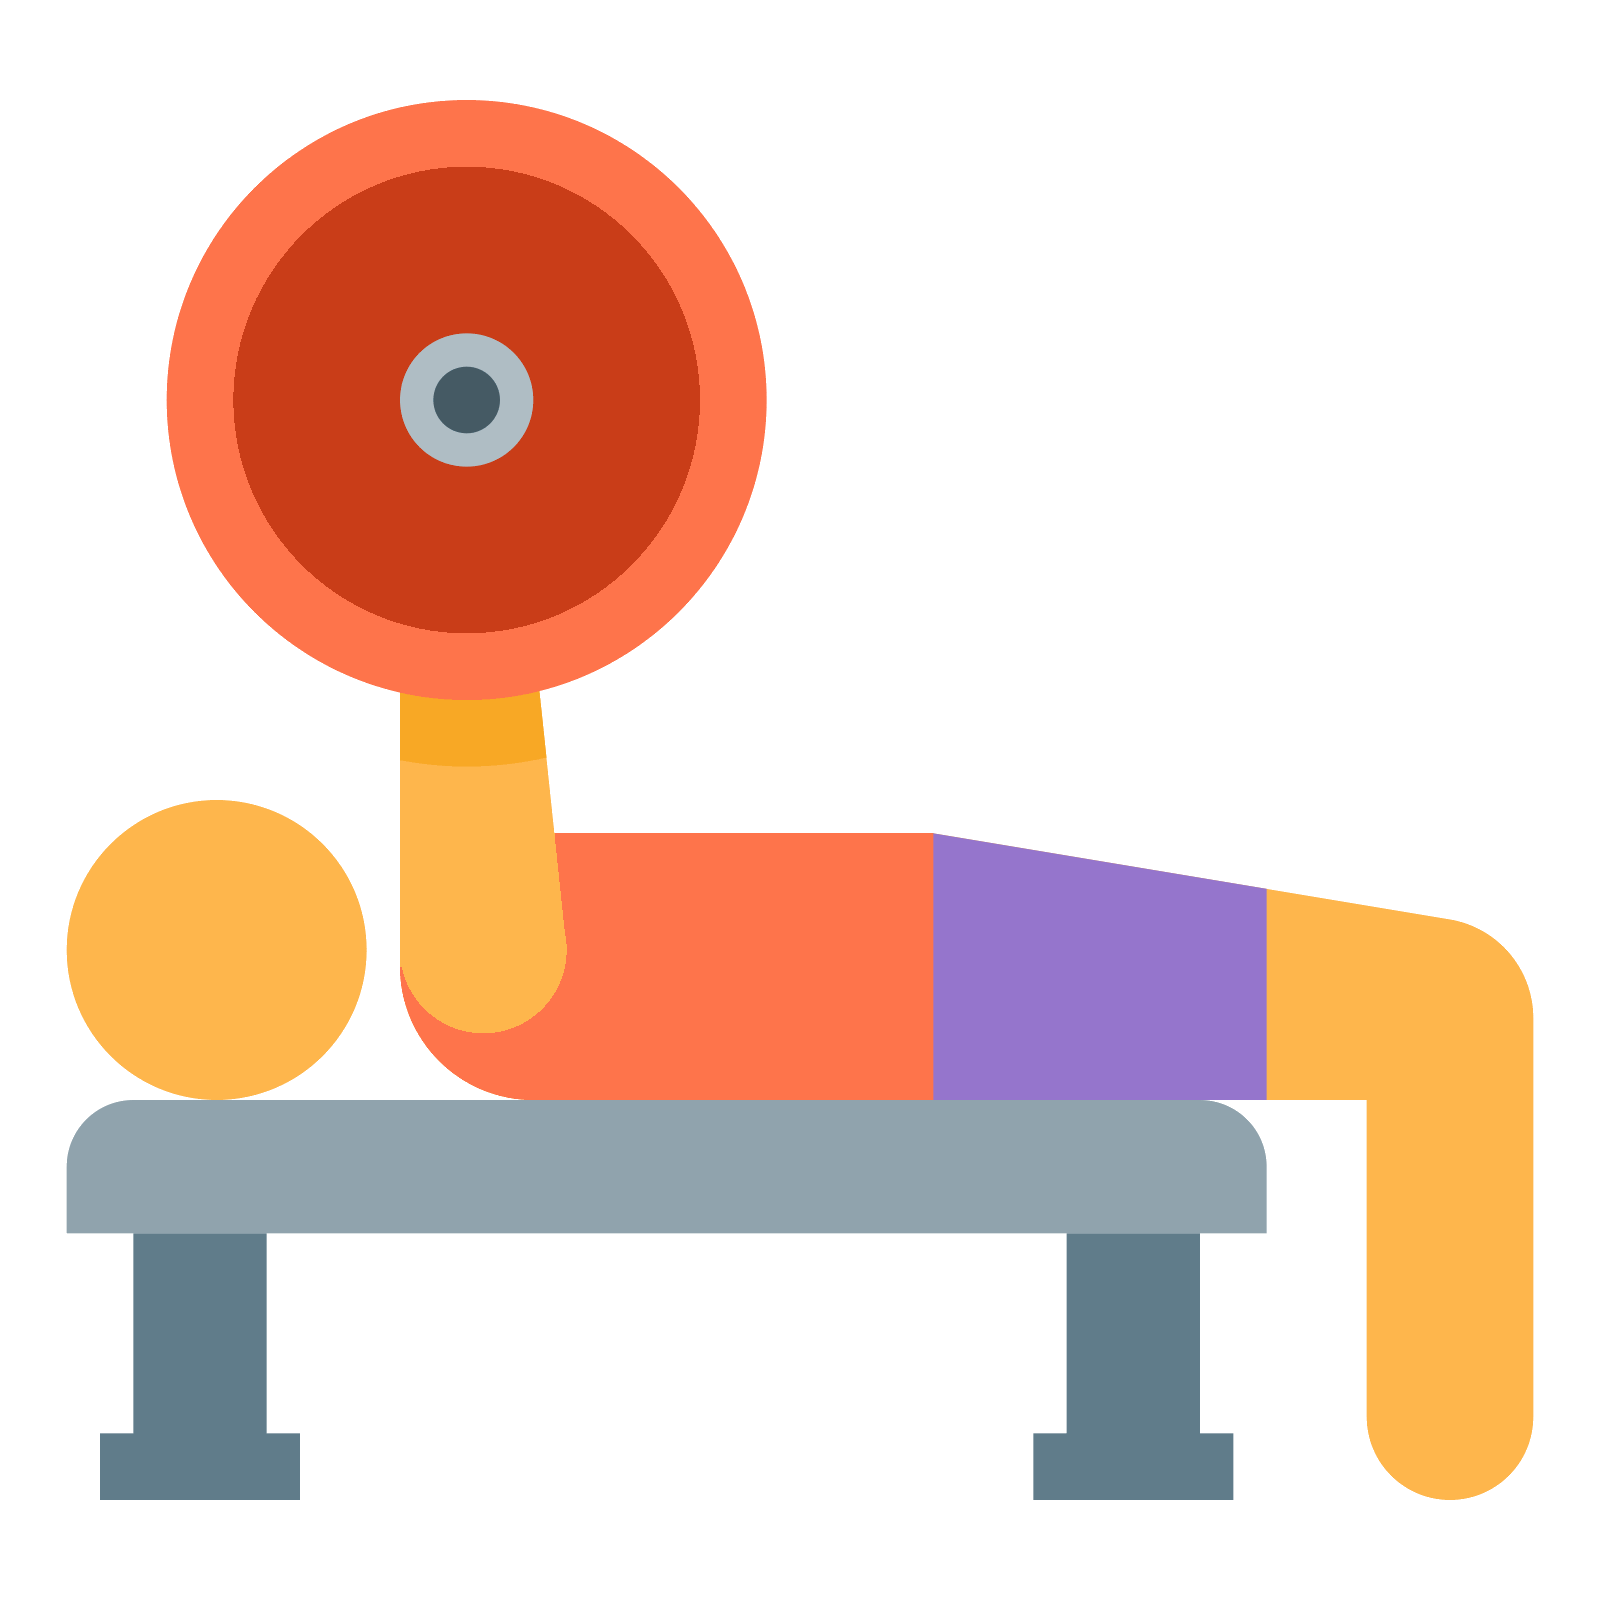 Dumbbell clipart bench press bar. Icon free download png